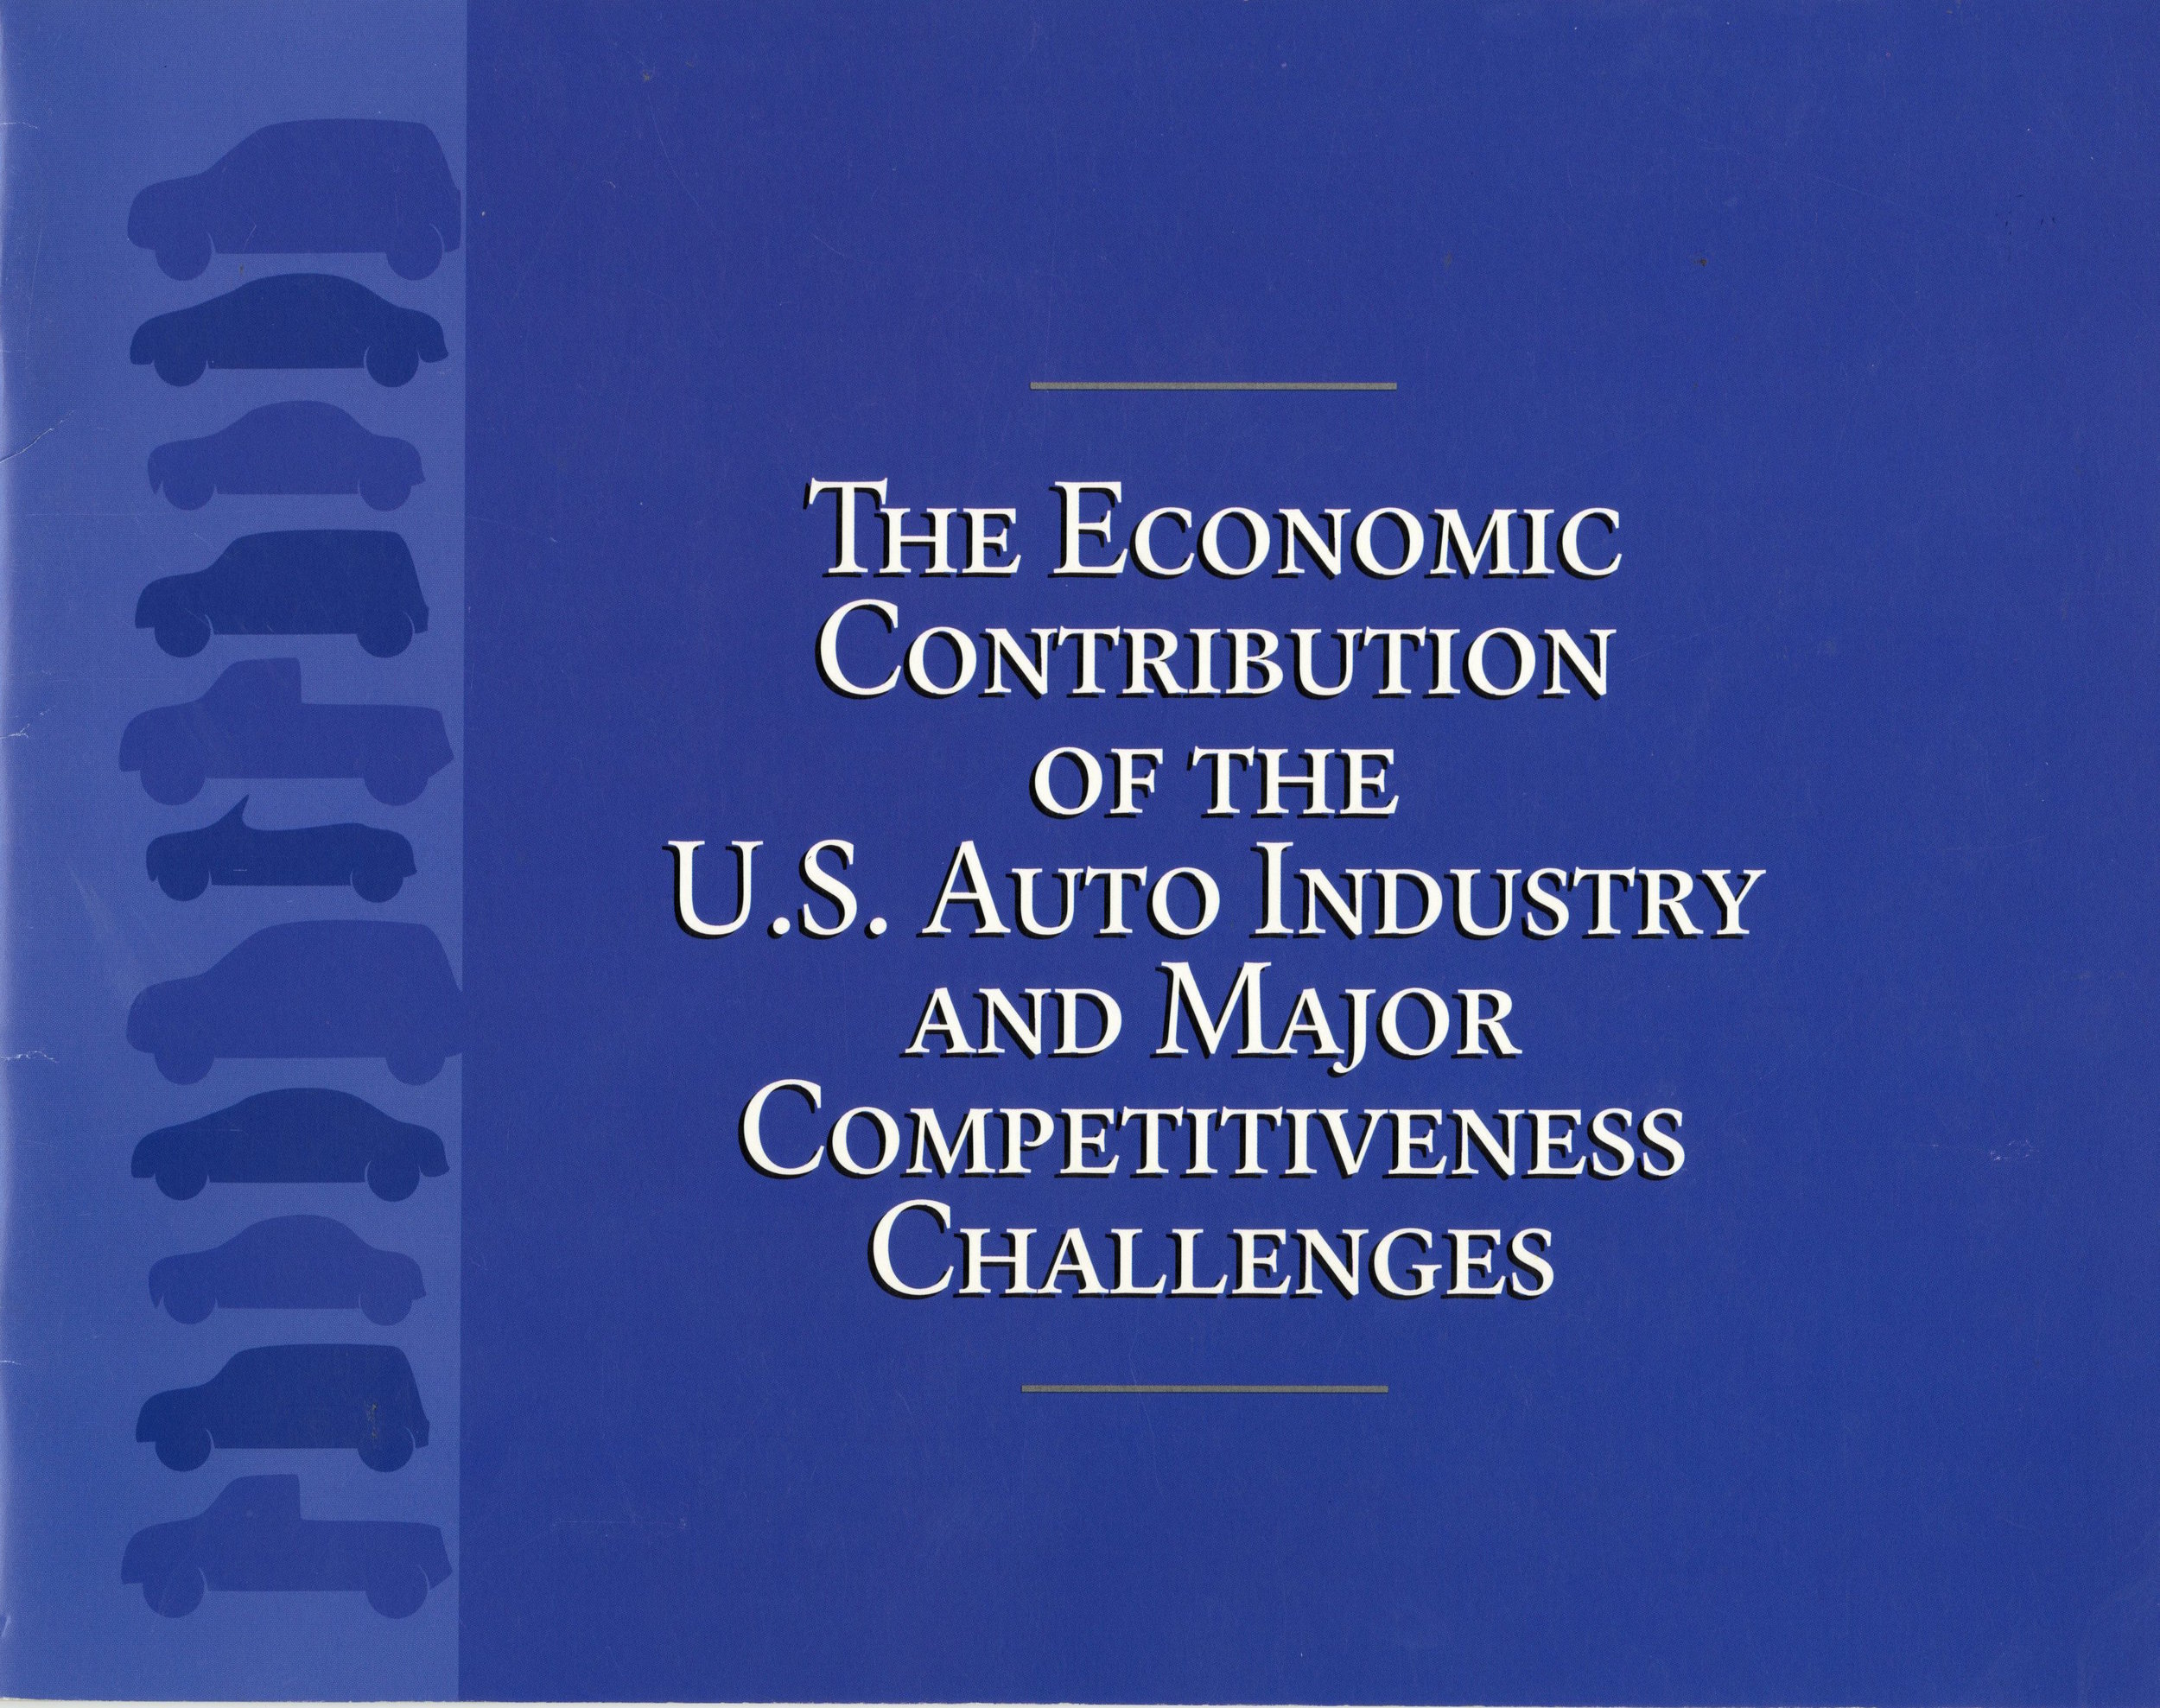 The Economic Contribution of the U.S. Auto Industry and Major Competitiveness Challenges